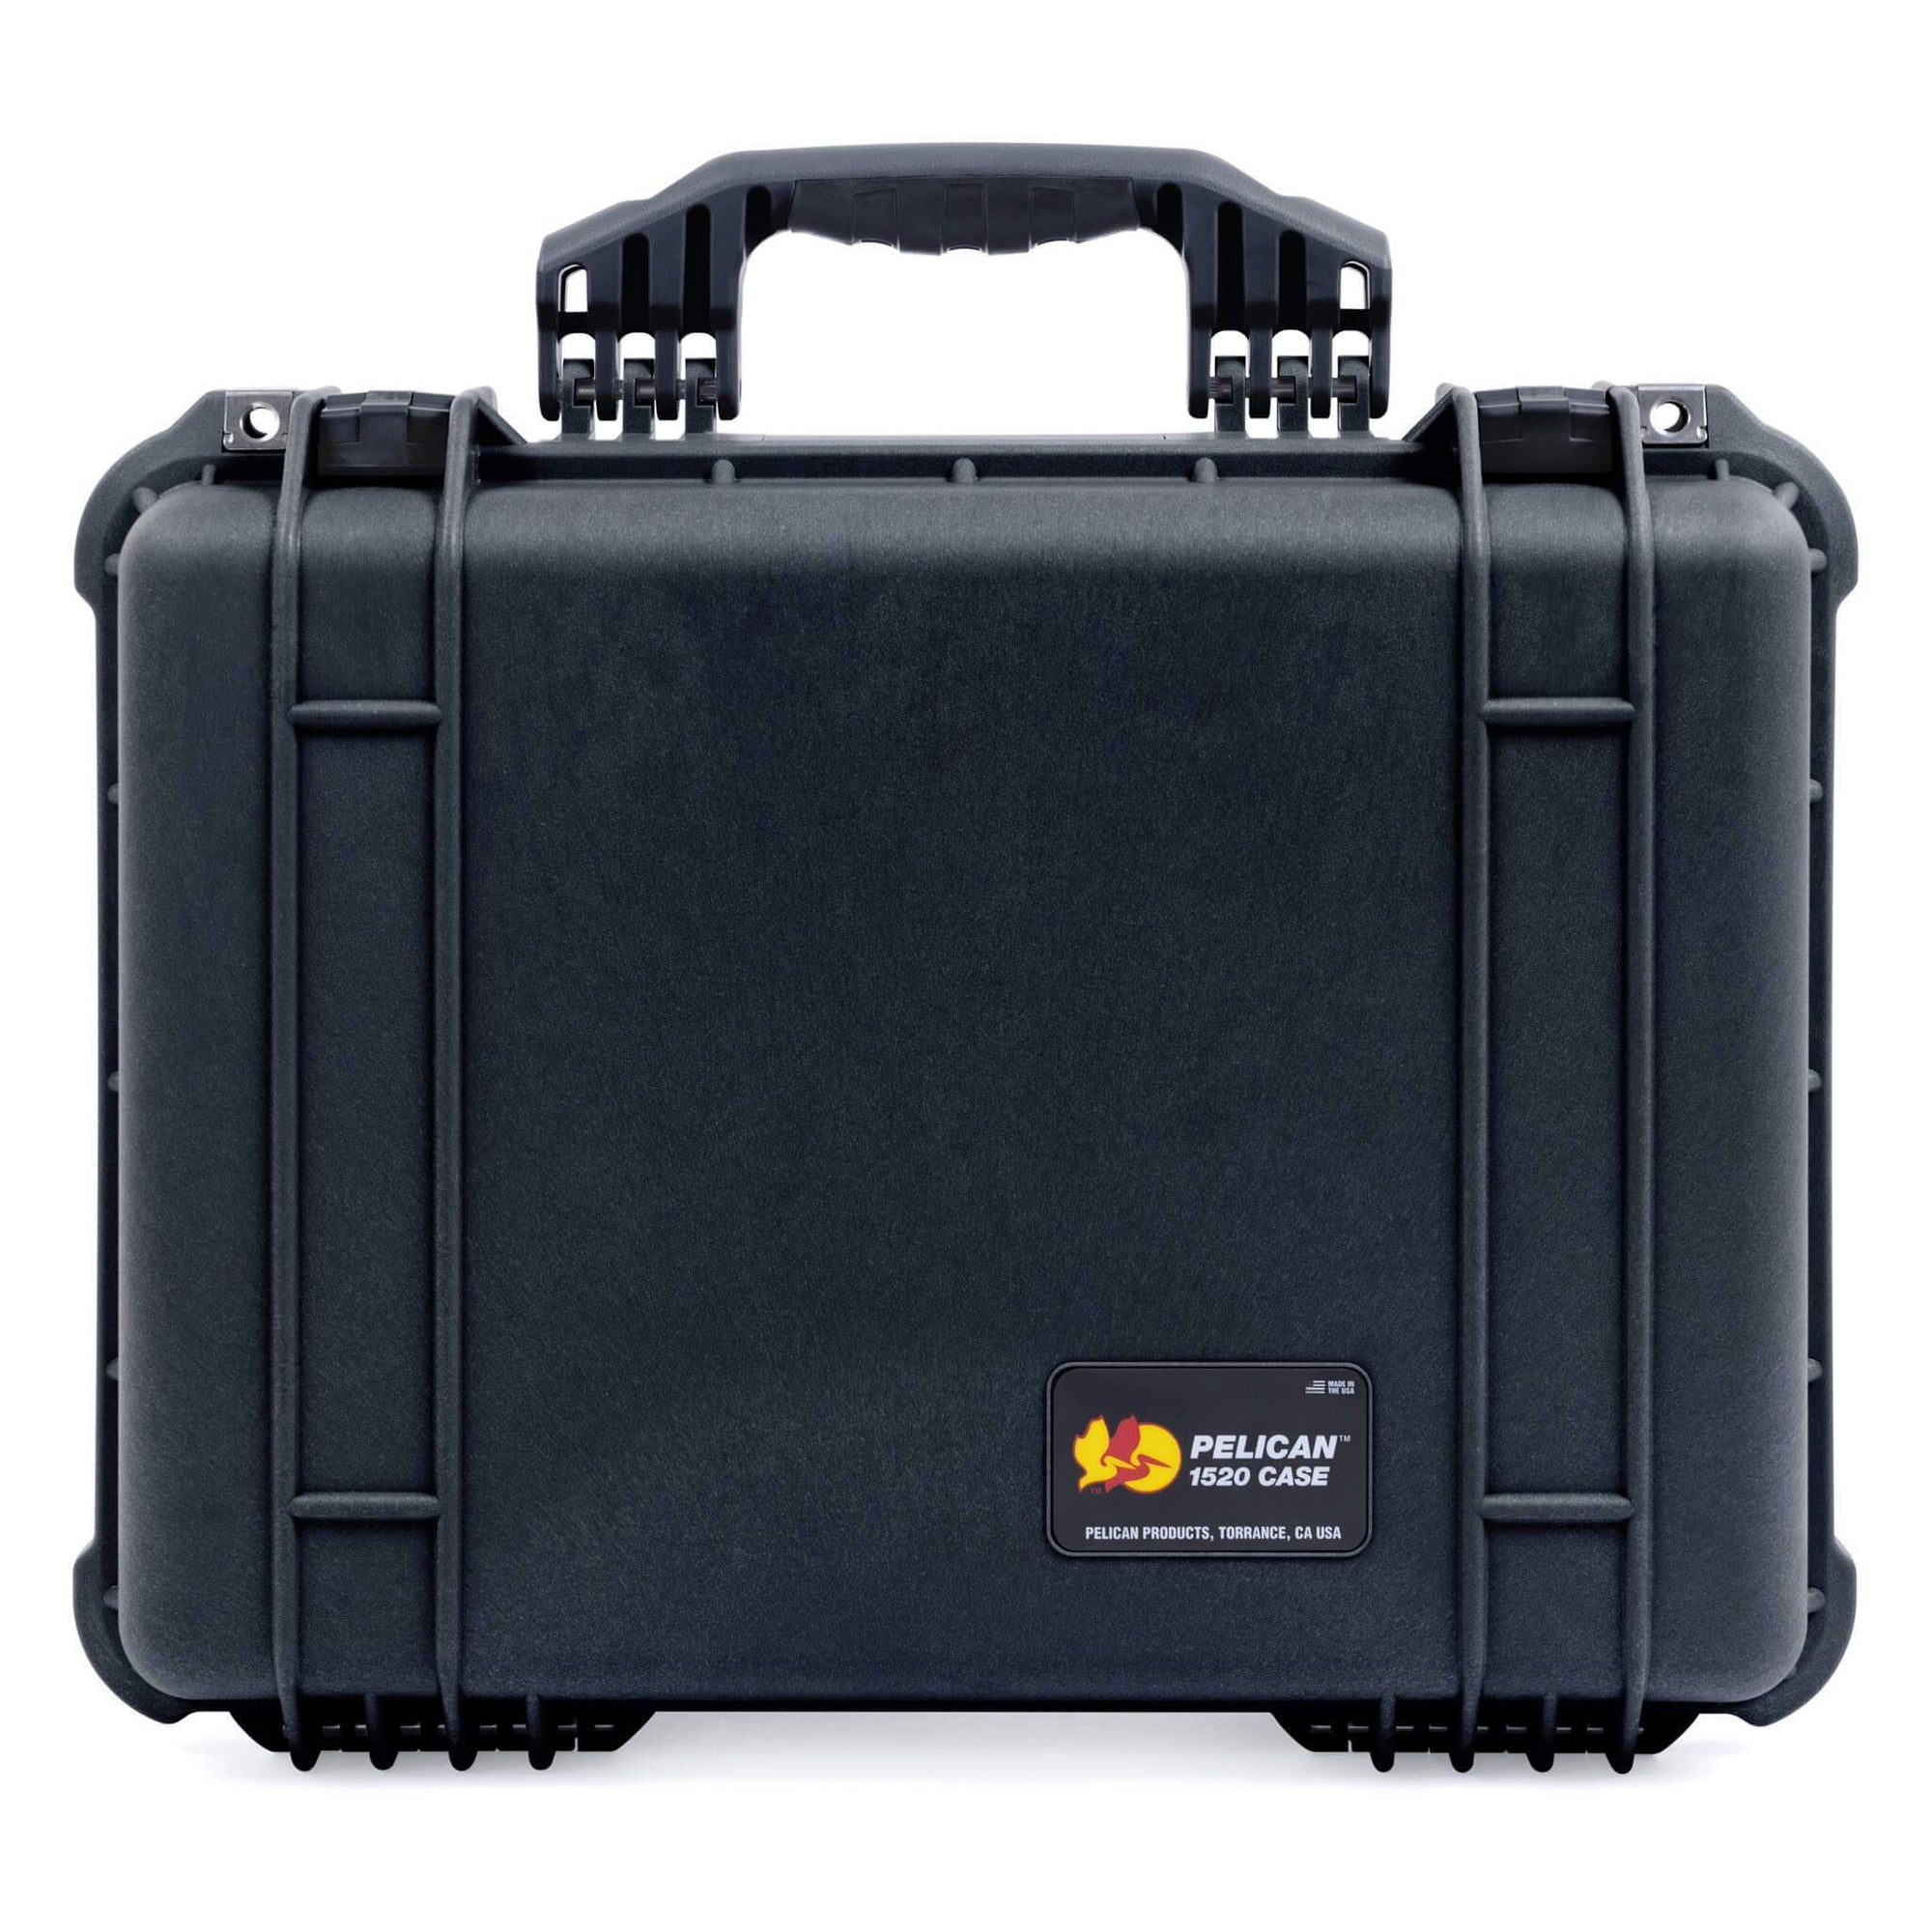 Pelican 1520 Case, Black